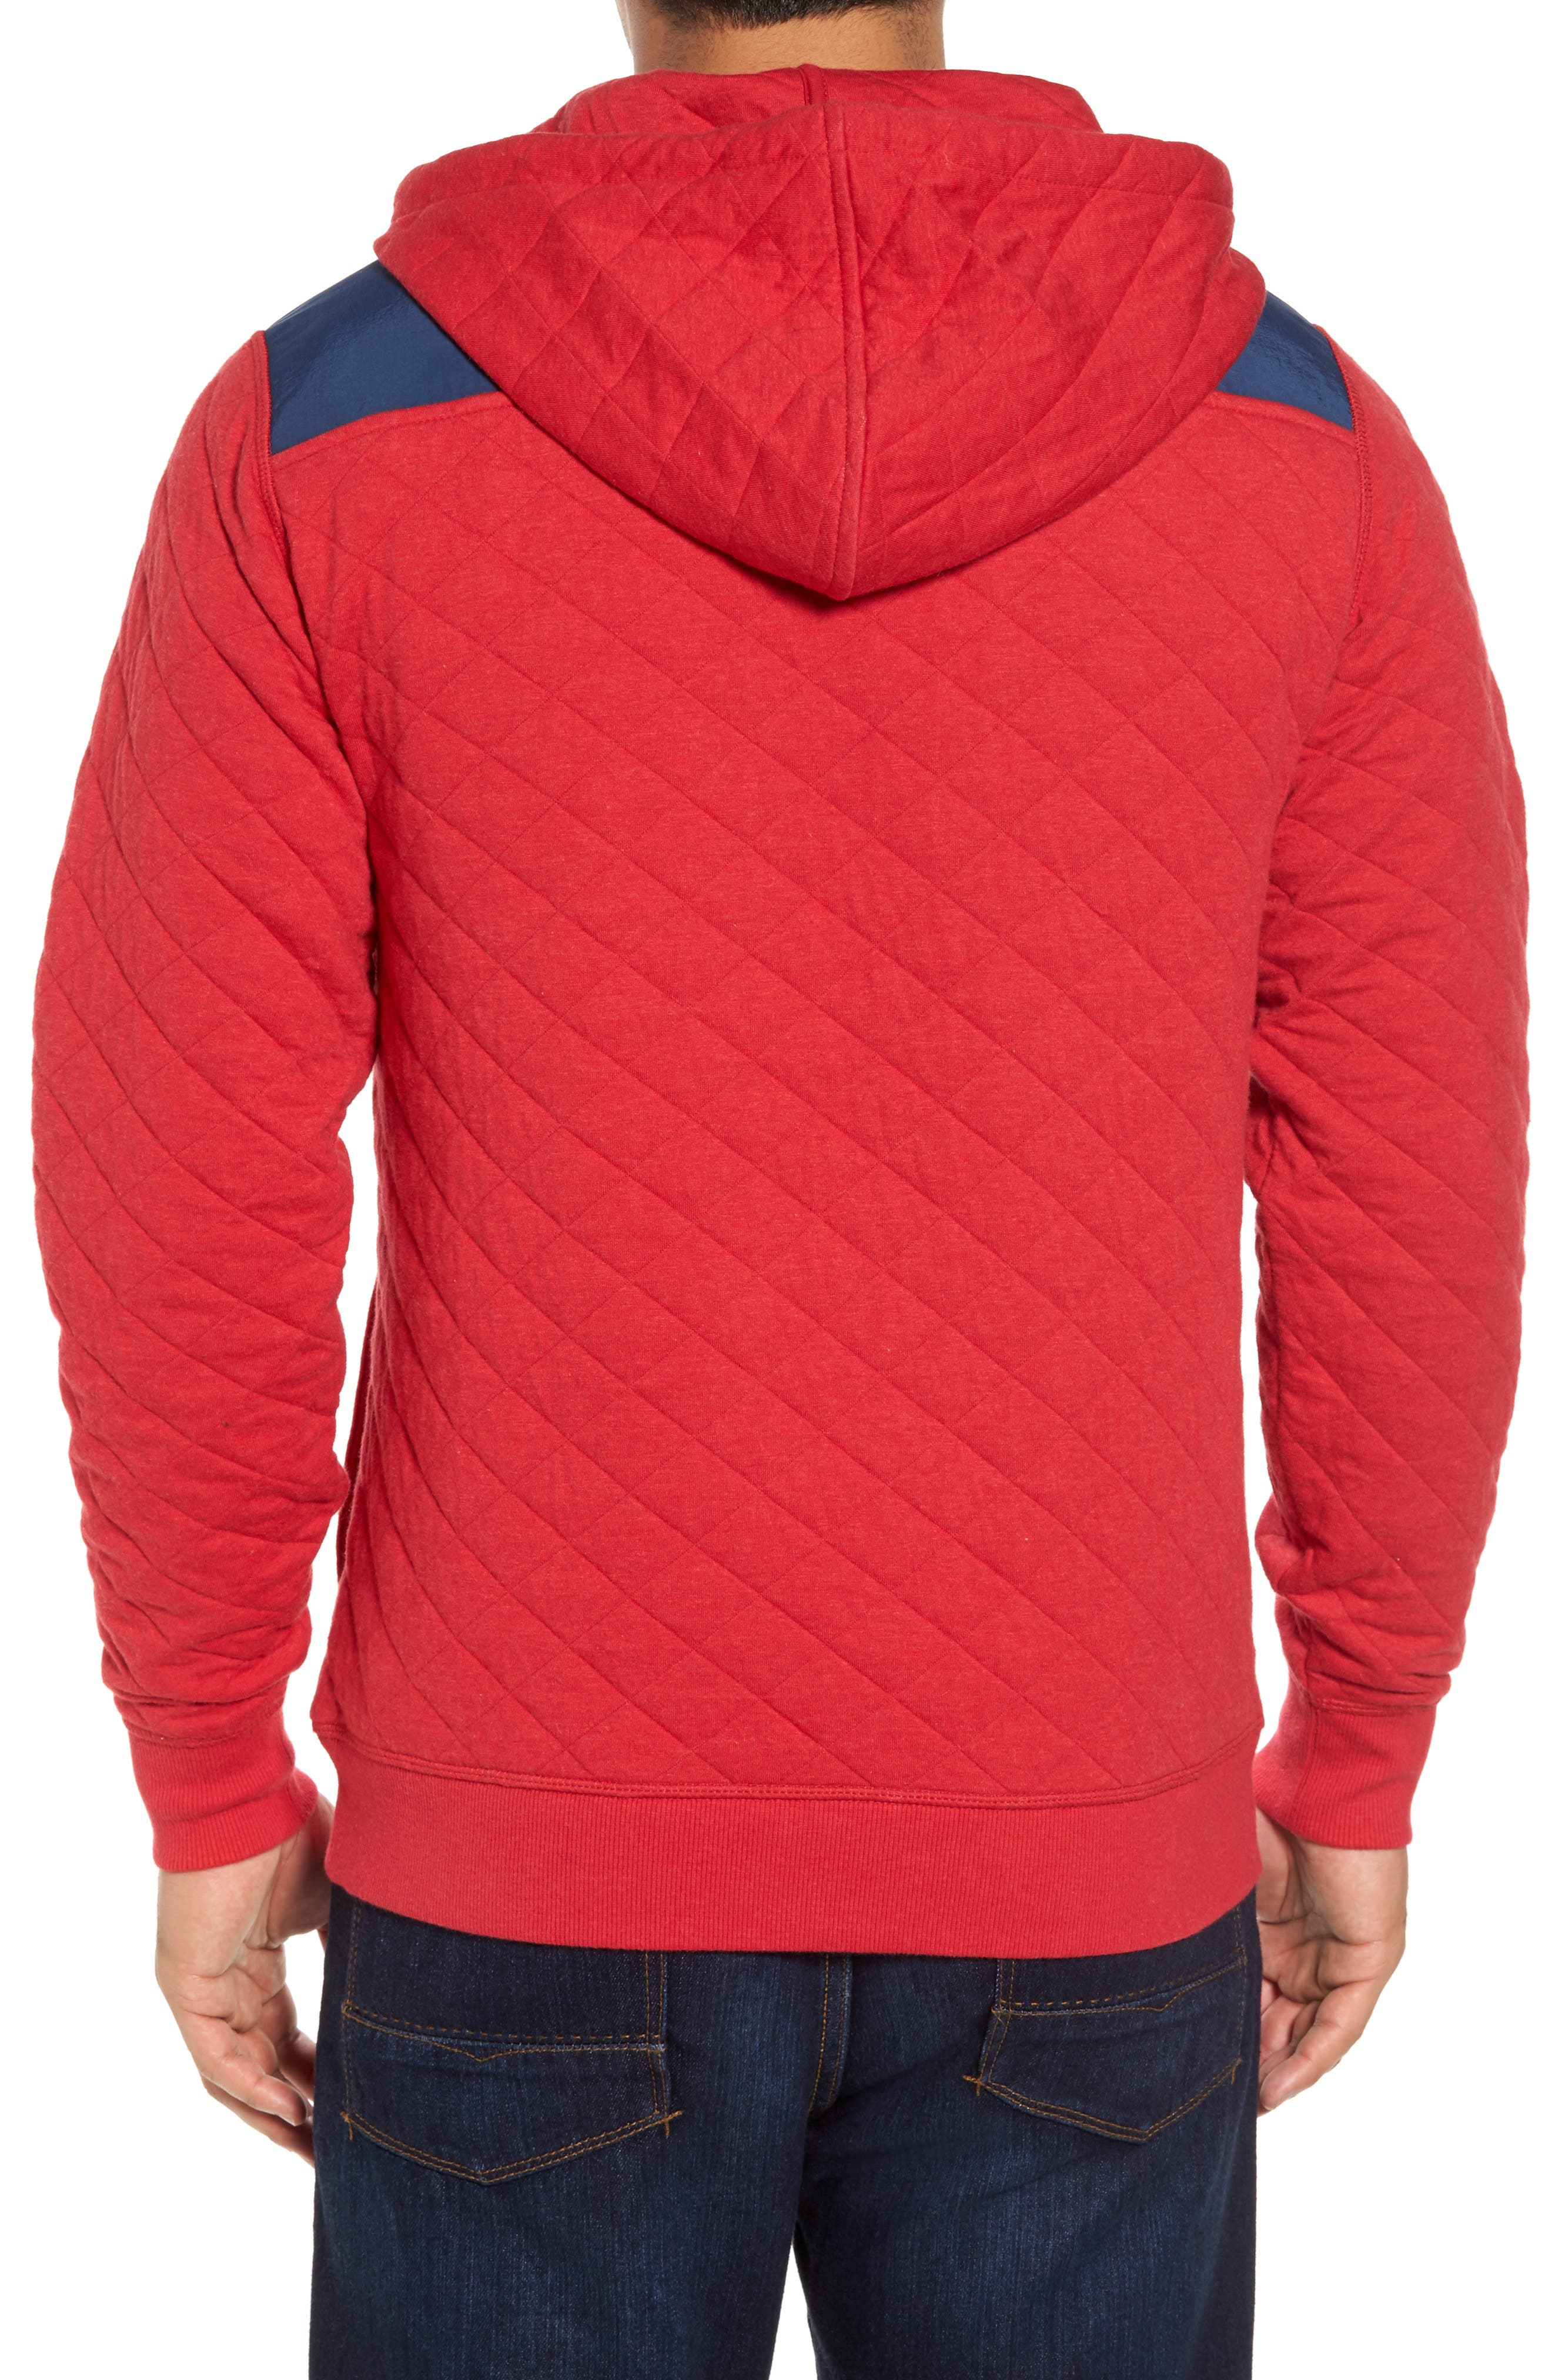 Shep Quilted Hoodie,                             Alternate thumbnail 2, color,                             Tomato Check